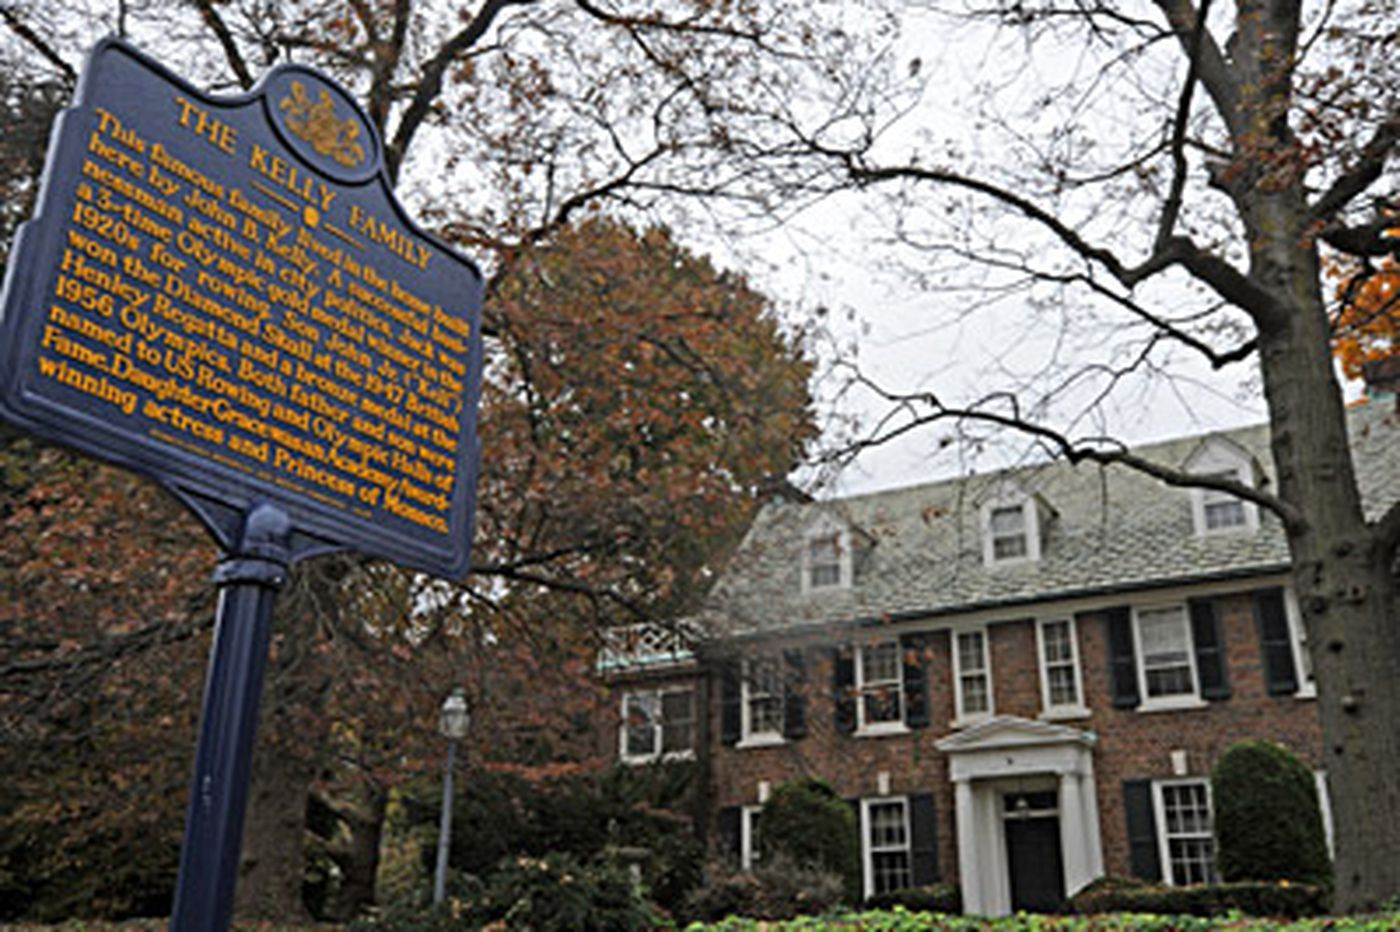 Grace Kelly's home gets historical marker